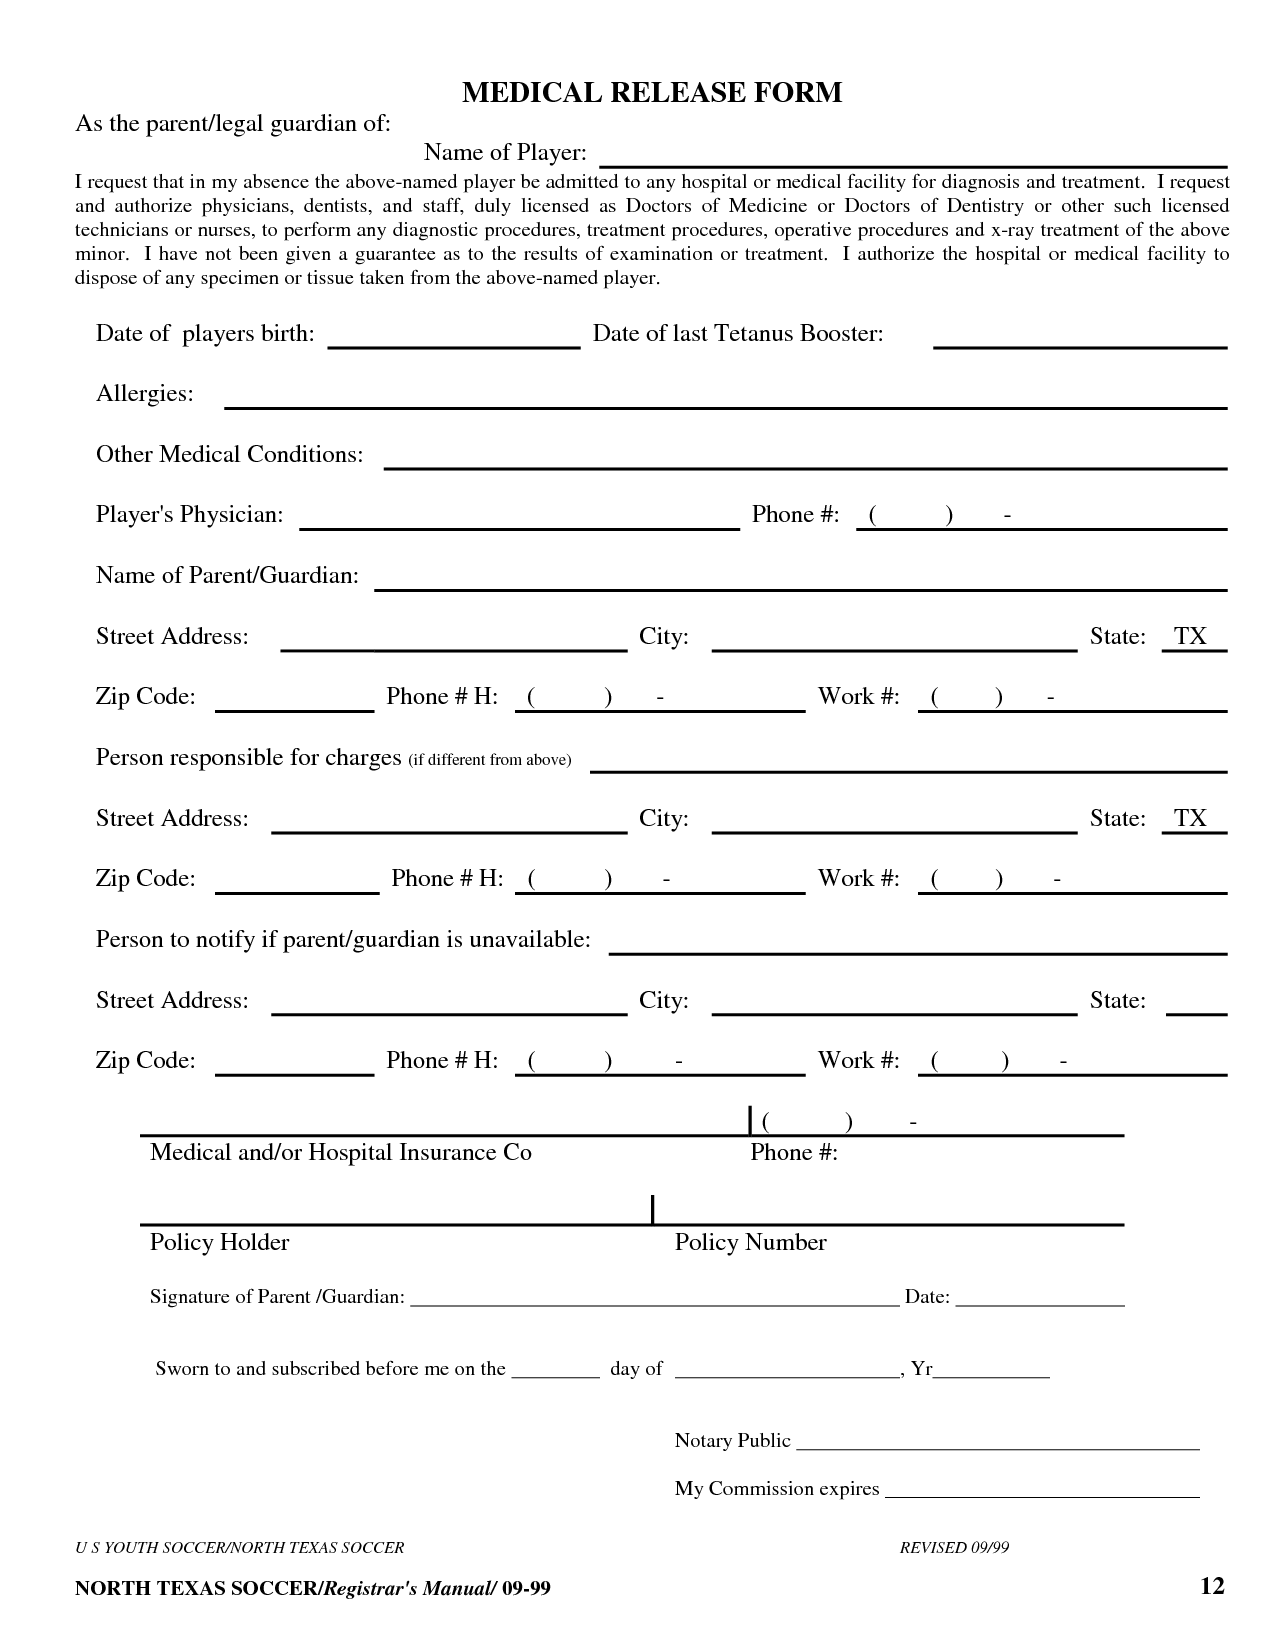 Free Printable Medical Release Form Template | Medical